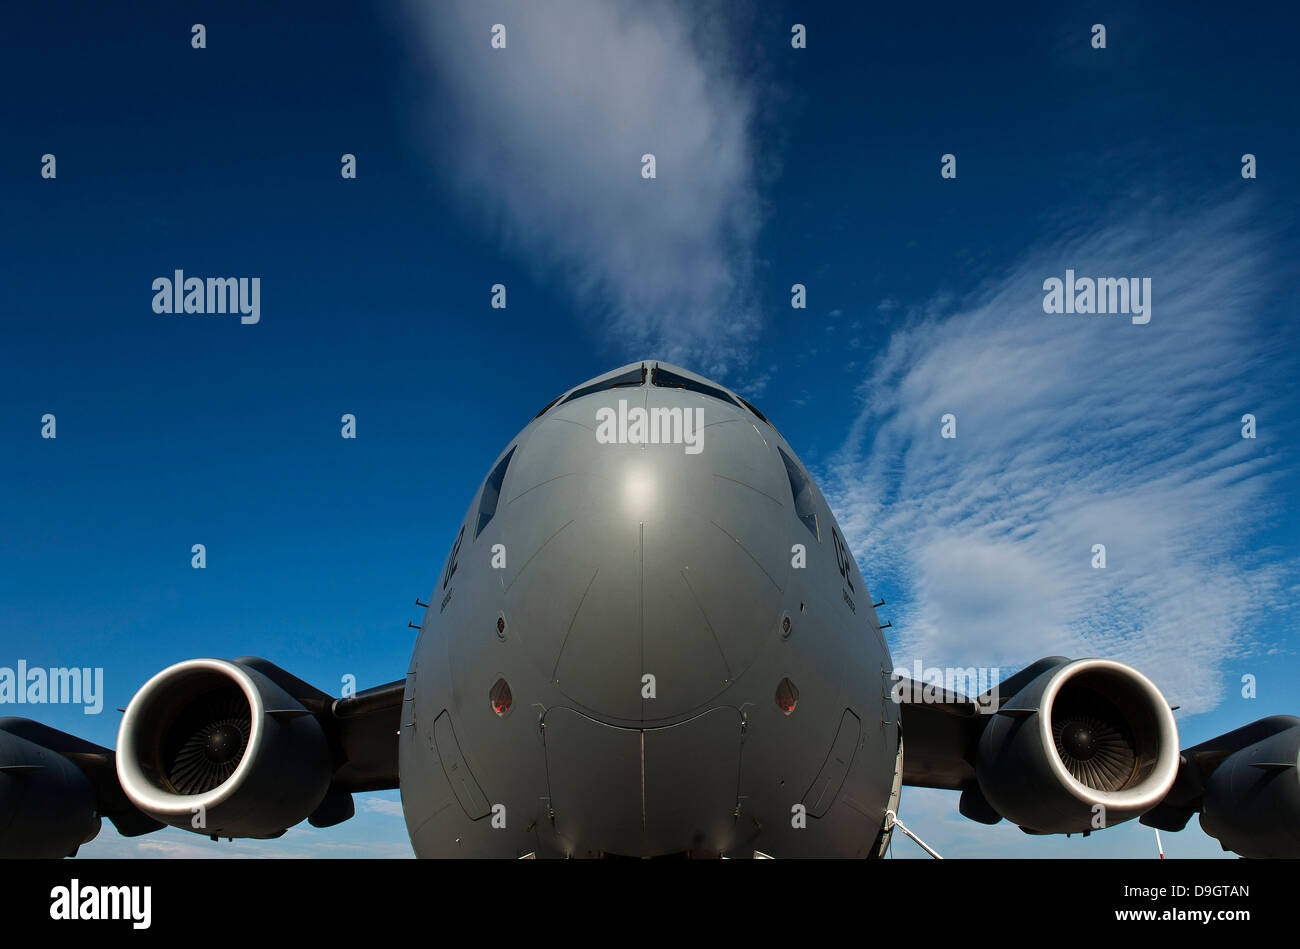 Low angle view of a C-17 Globemaster III. - Stock Image